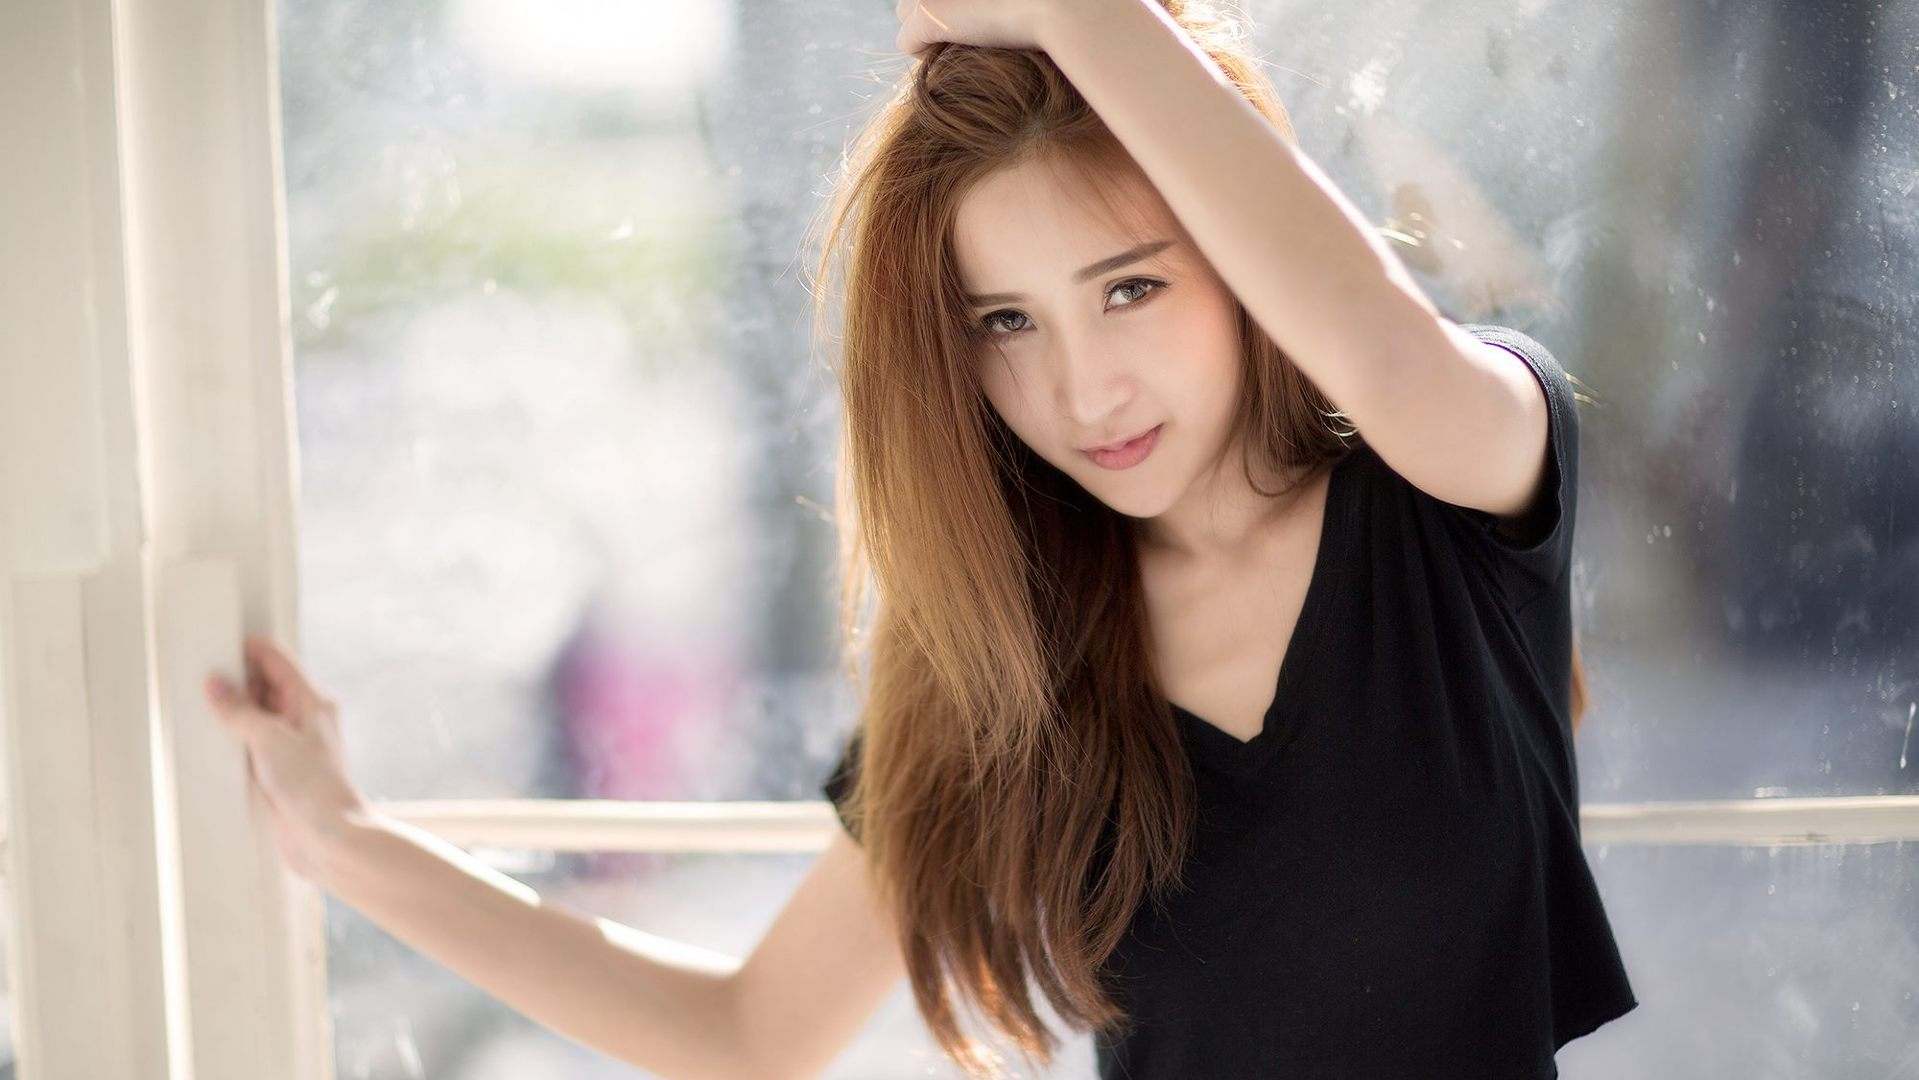 Download asian girl cute in black 1920x1080 resolution full hd 2k hd voltagebd Images